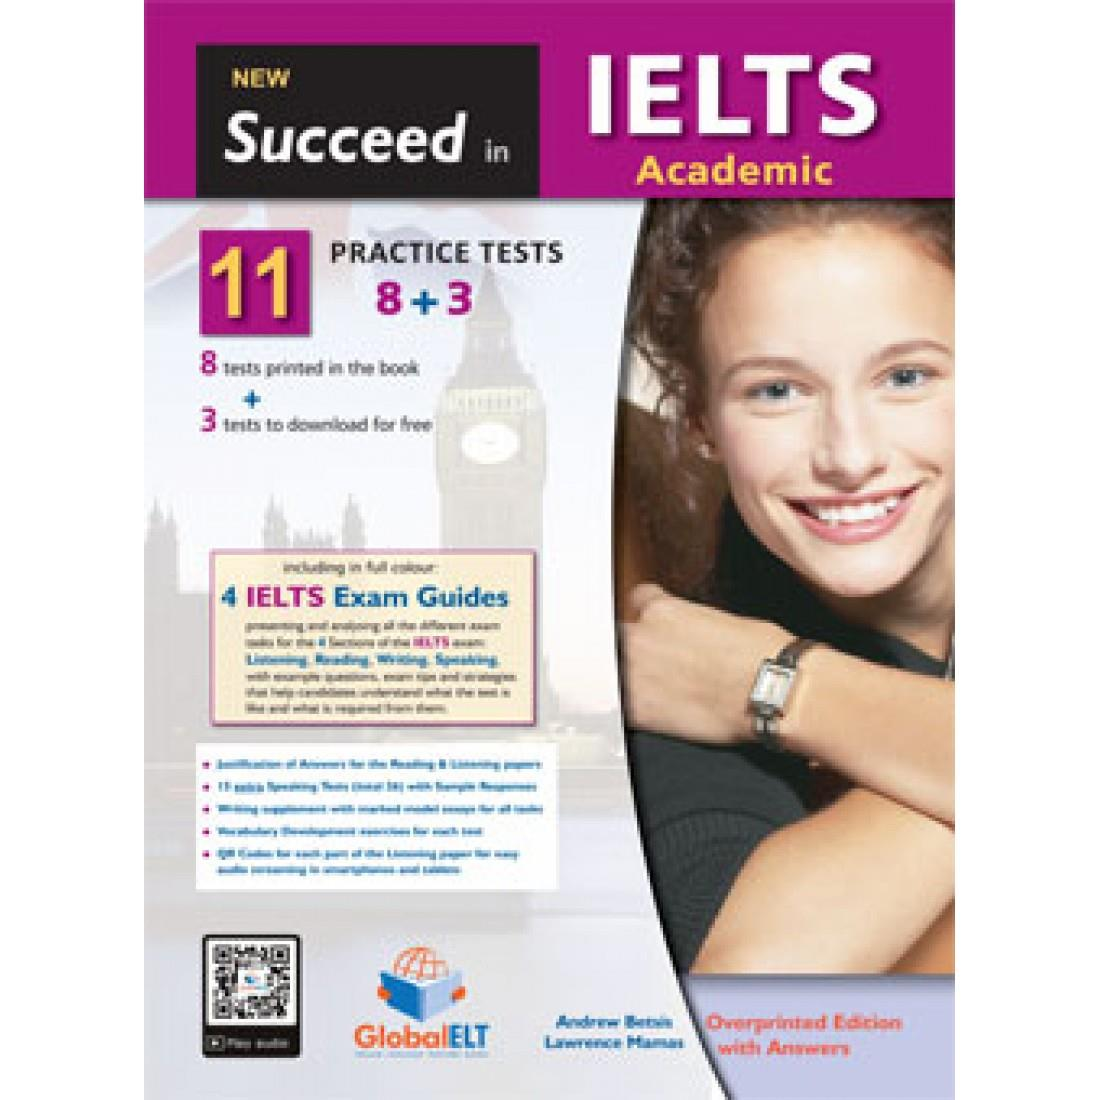 NEW SUCCEED IN IELTS ACADEMIC 11(8+3) PRACTICE TESTS TCHR S